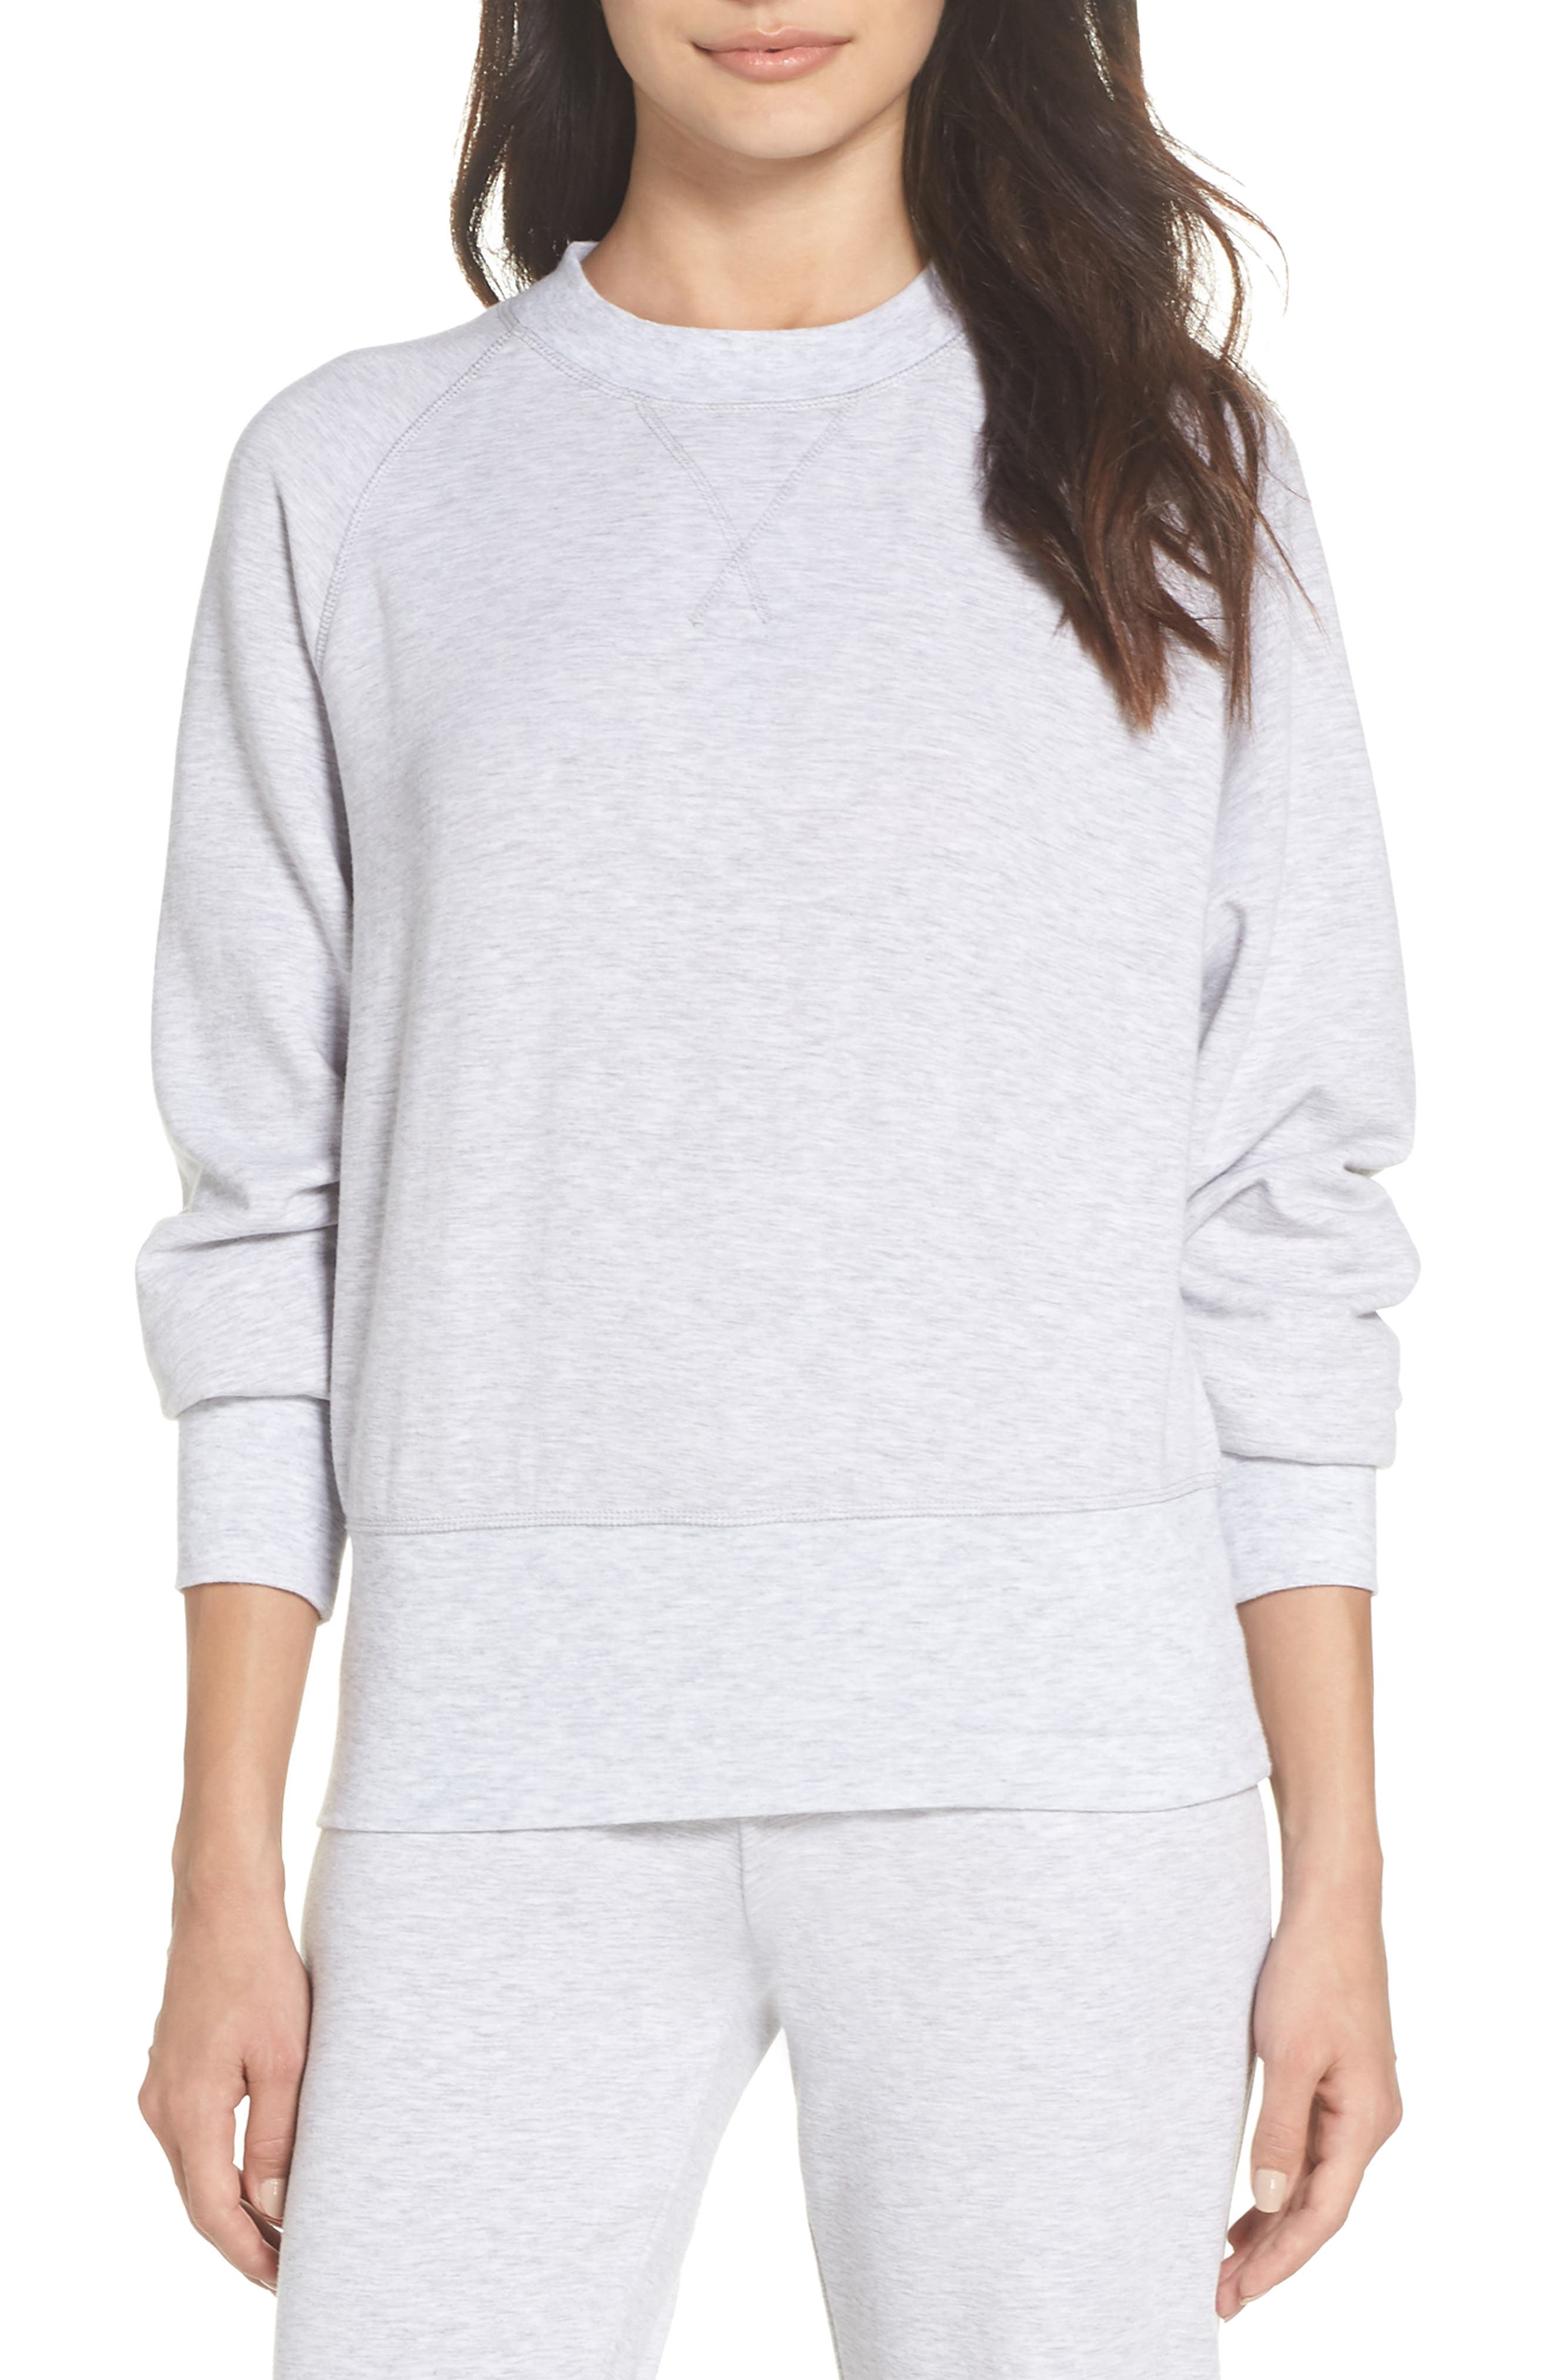 Cool Touch Sweatshirt,                         Main,                         color, GREY